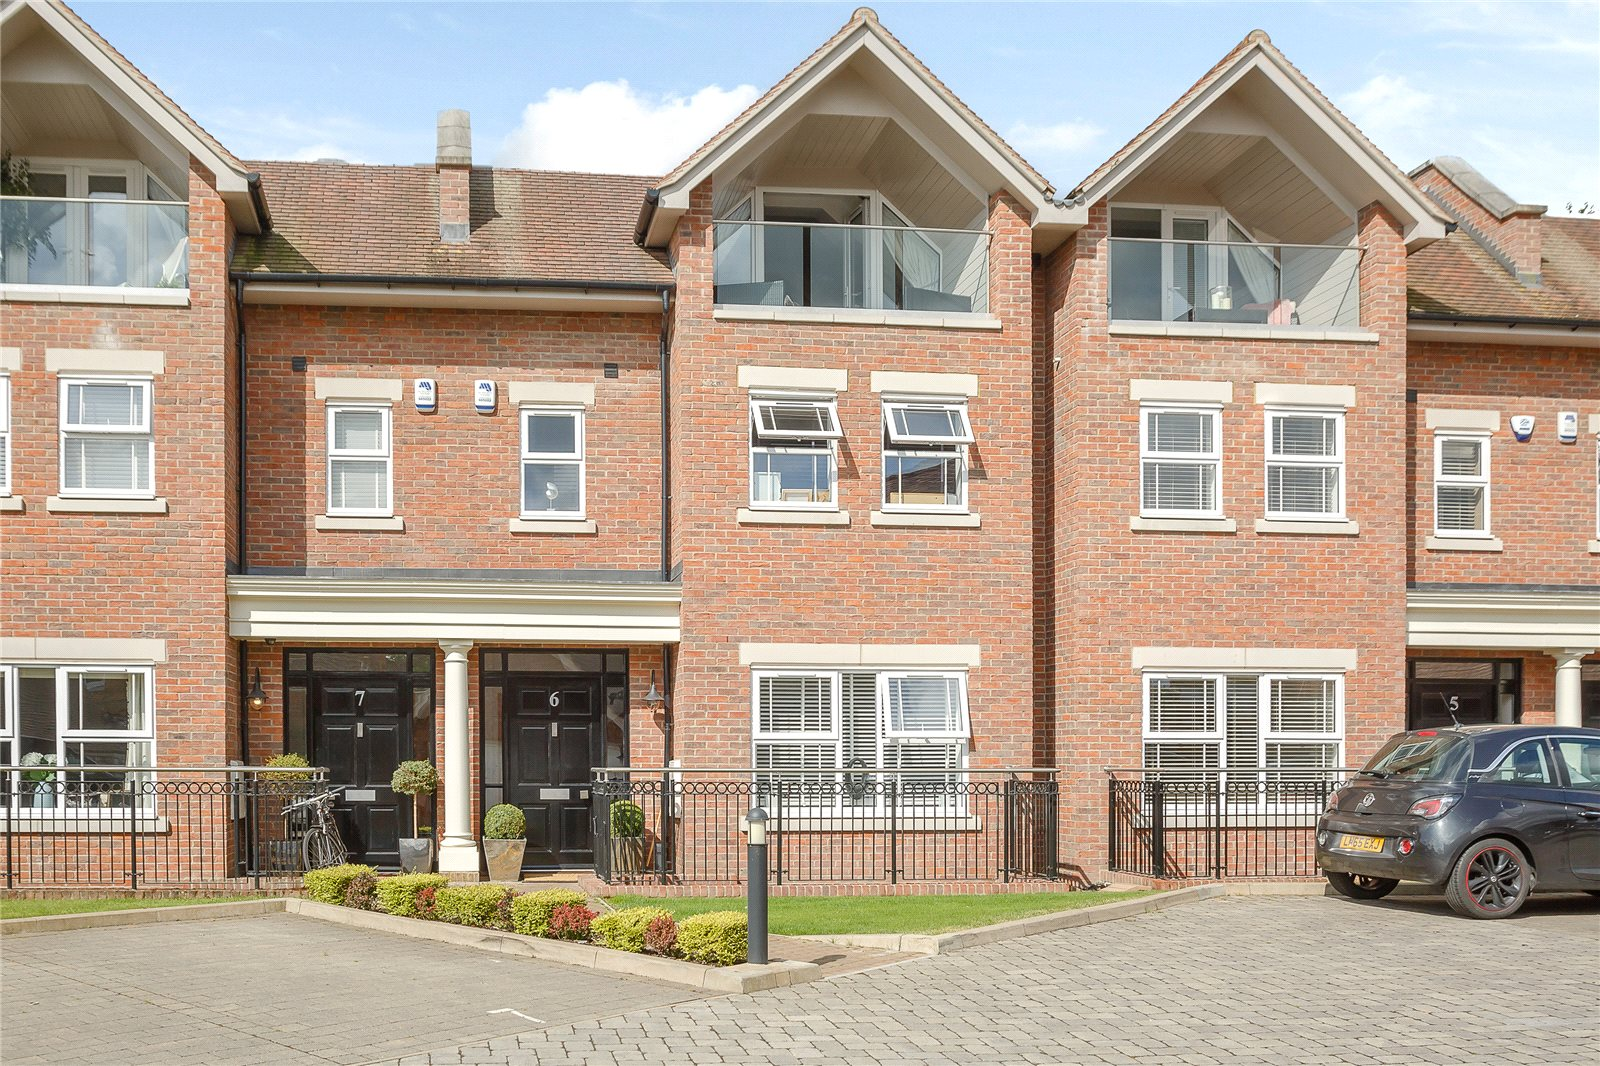 Maison unifamiliale pour l Vente à Green Lawns Close, Harpenden, Hertfordshire, AL5 Harpenden, Angleterre